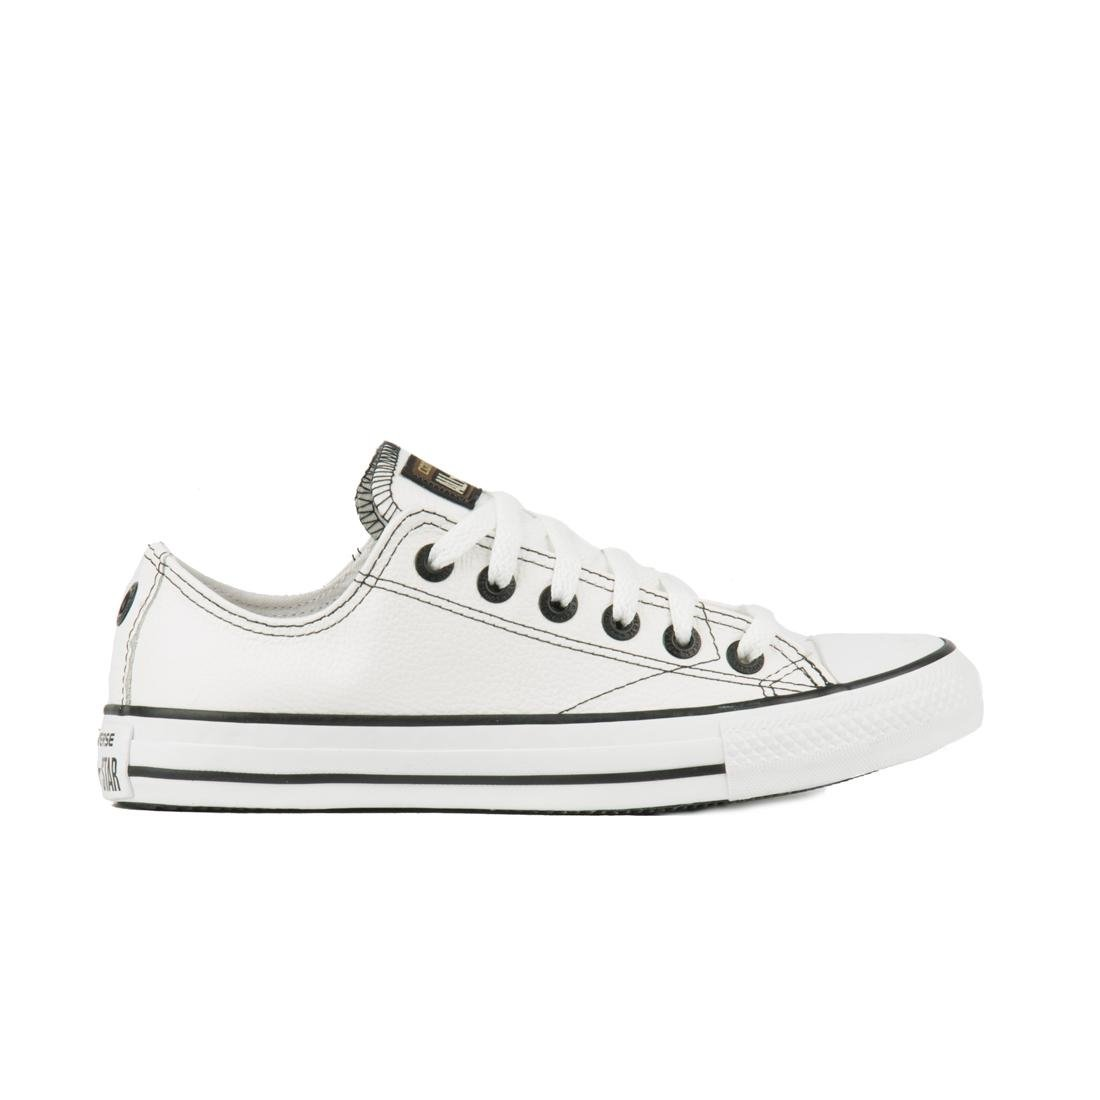 Ox Branco Star Preto Converse Tenis All Branco European Branco Ct CqxfXxw6